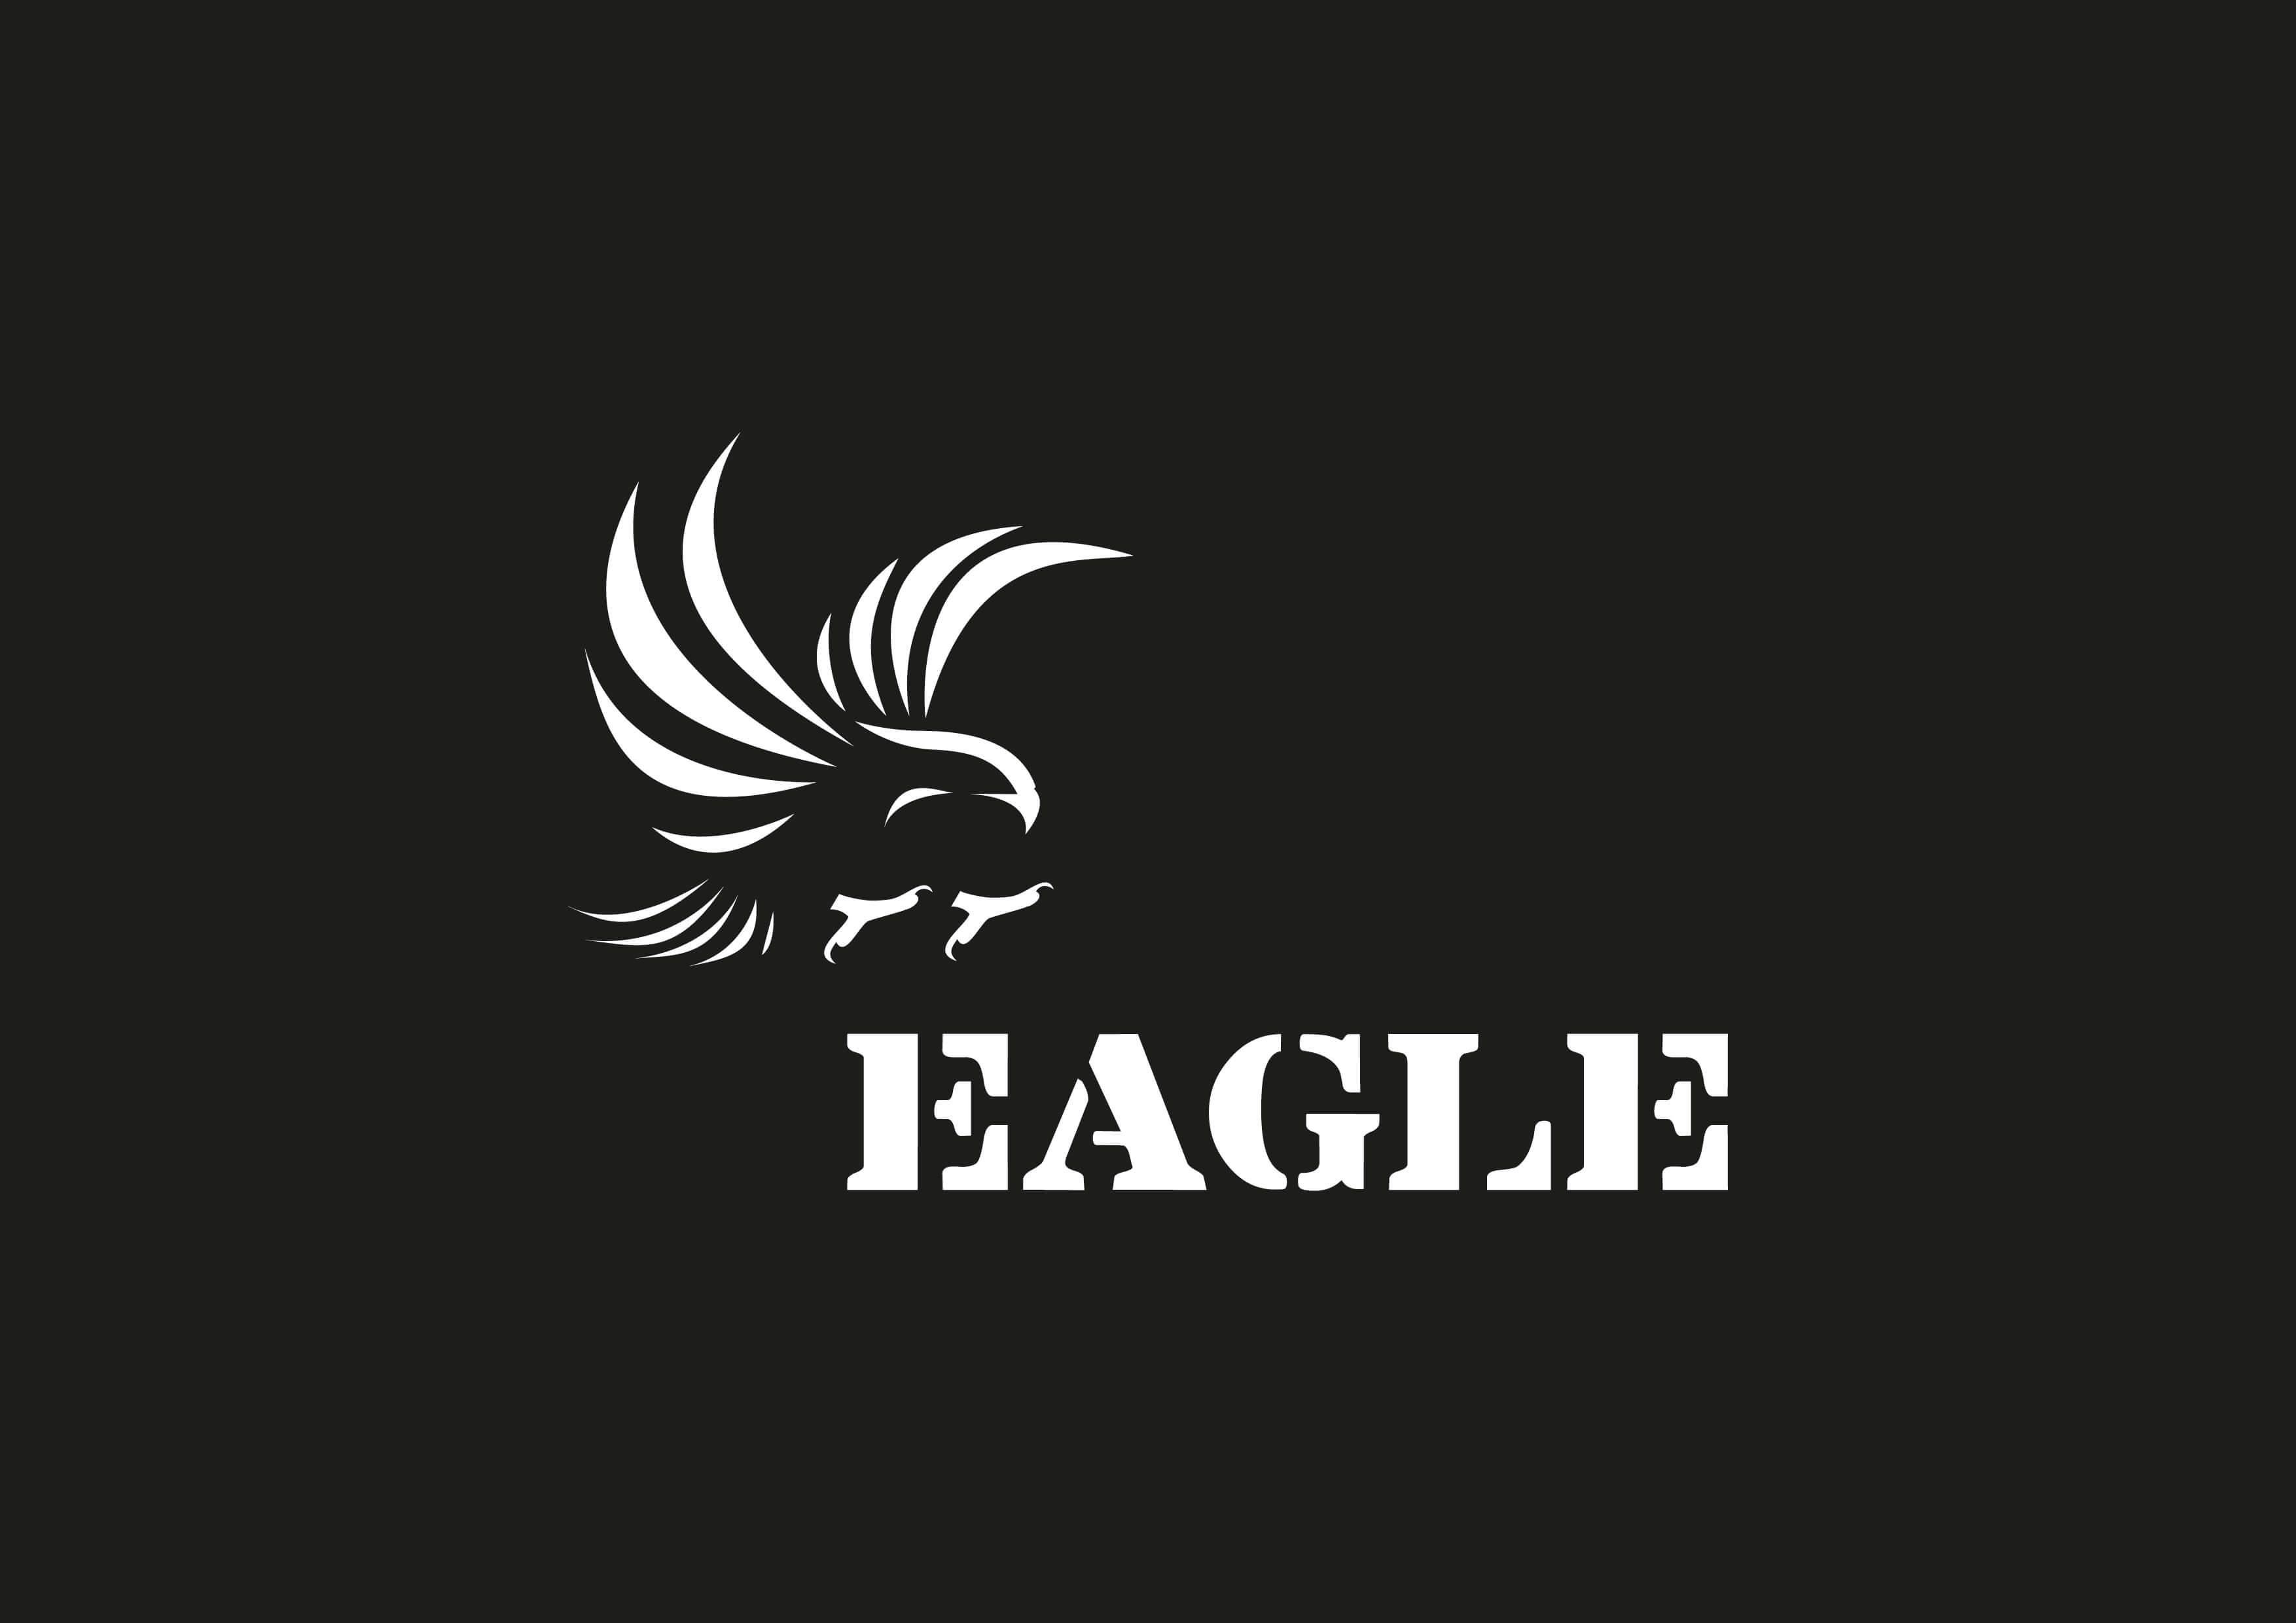 Eagle enforcement